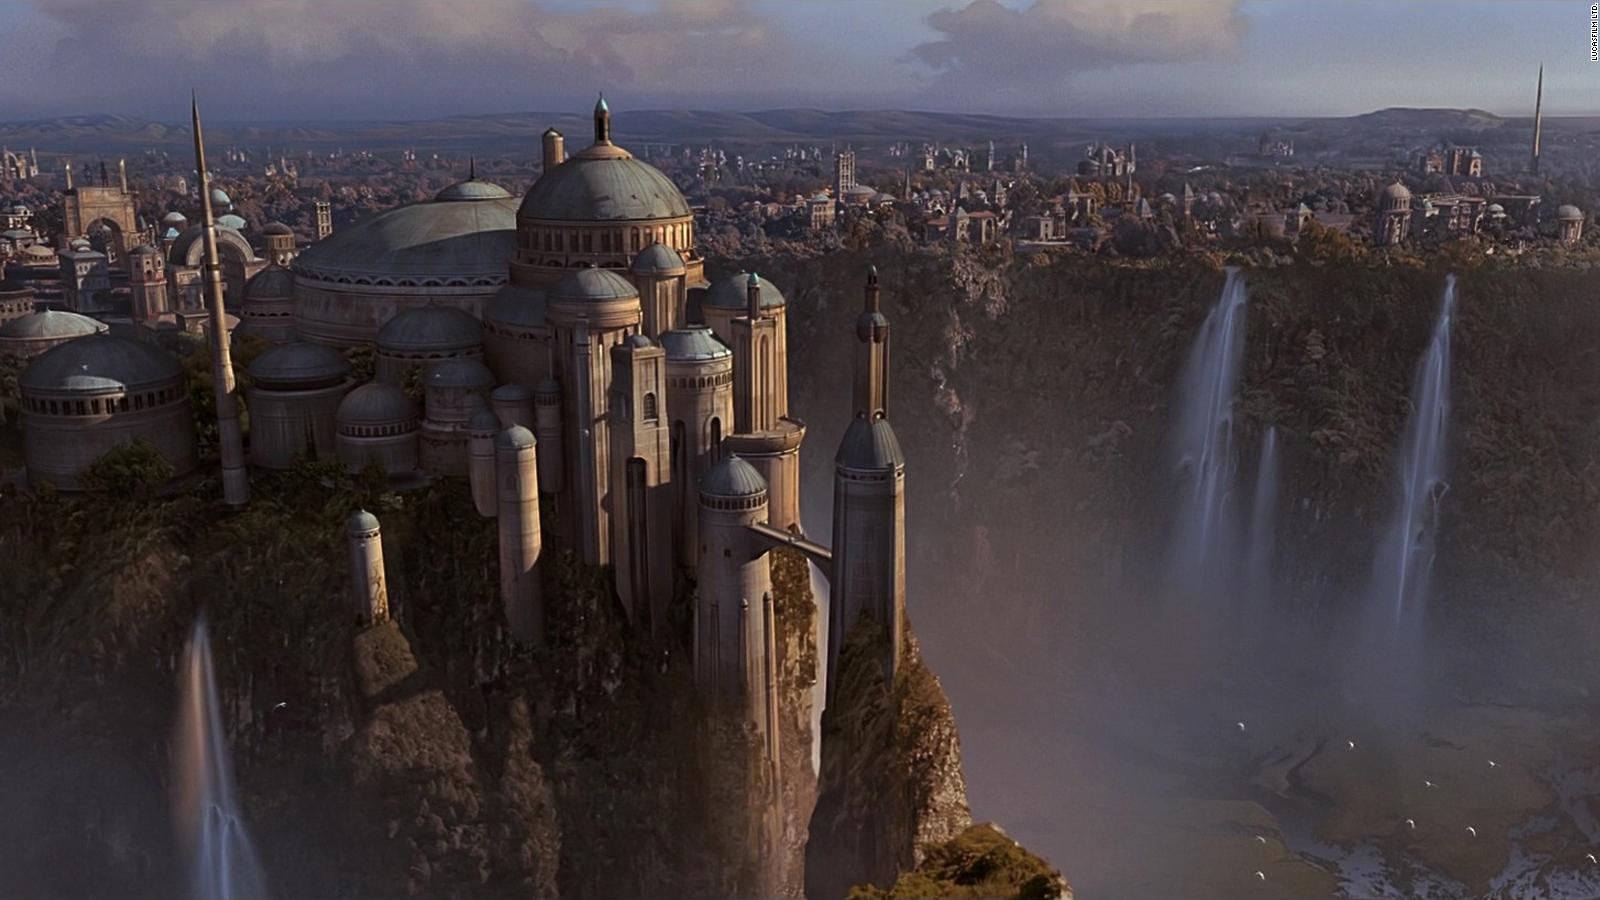 Star Wars Architecture The Earth Buildings And Places That Inspired George Lucas Style